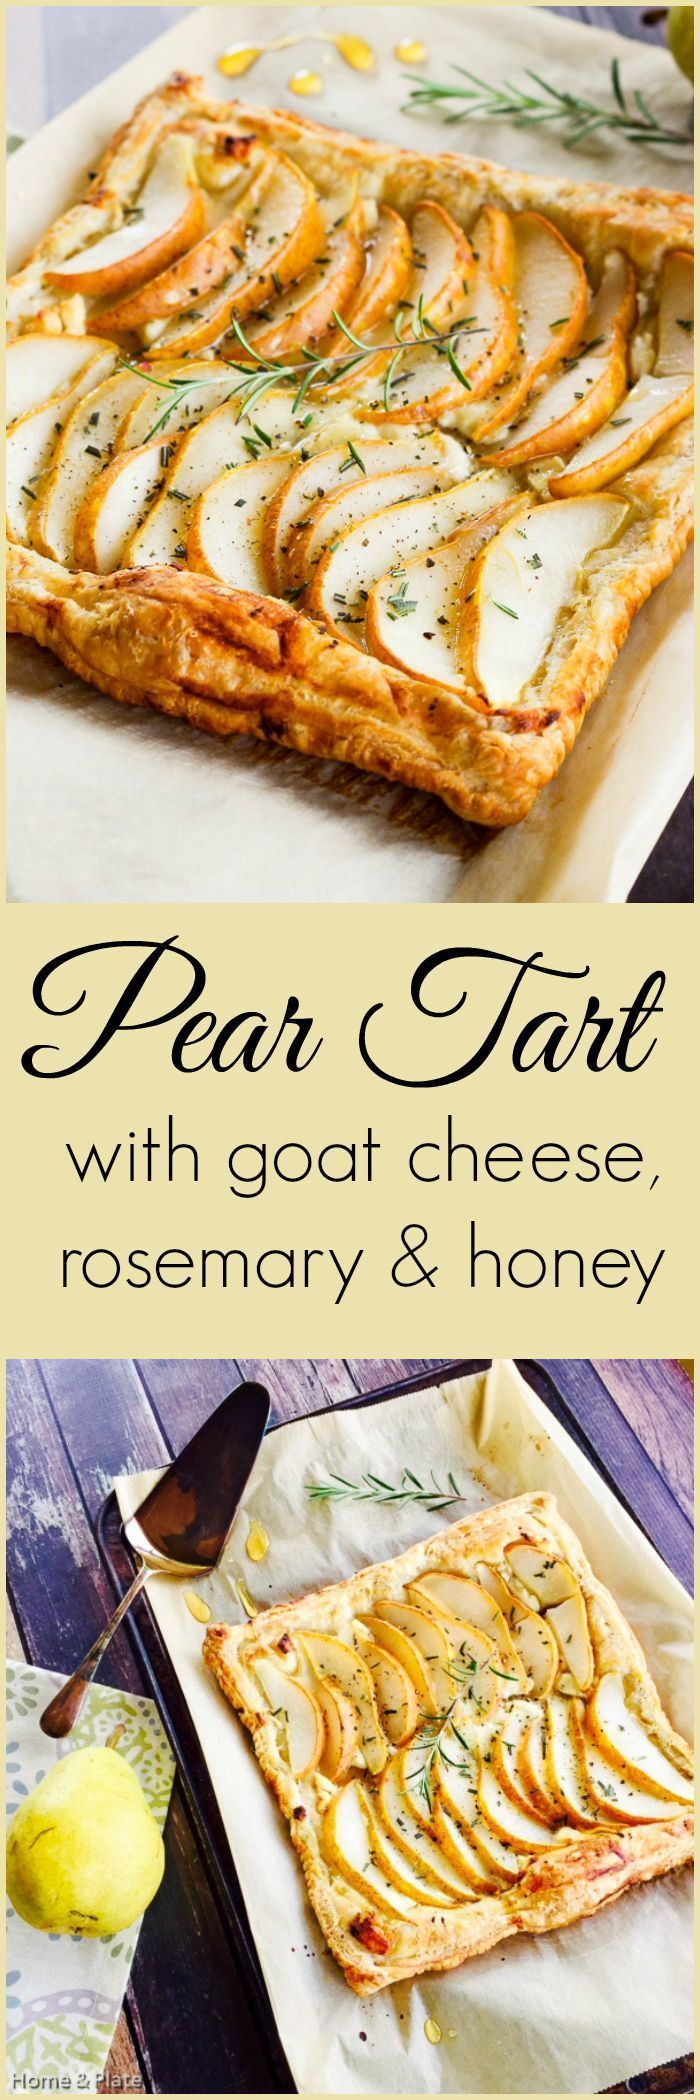 ... Goat Cheese on Pinterest | Goat cheese appetizers, Goat cheese and